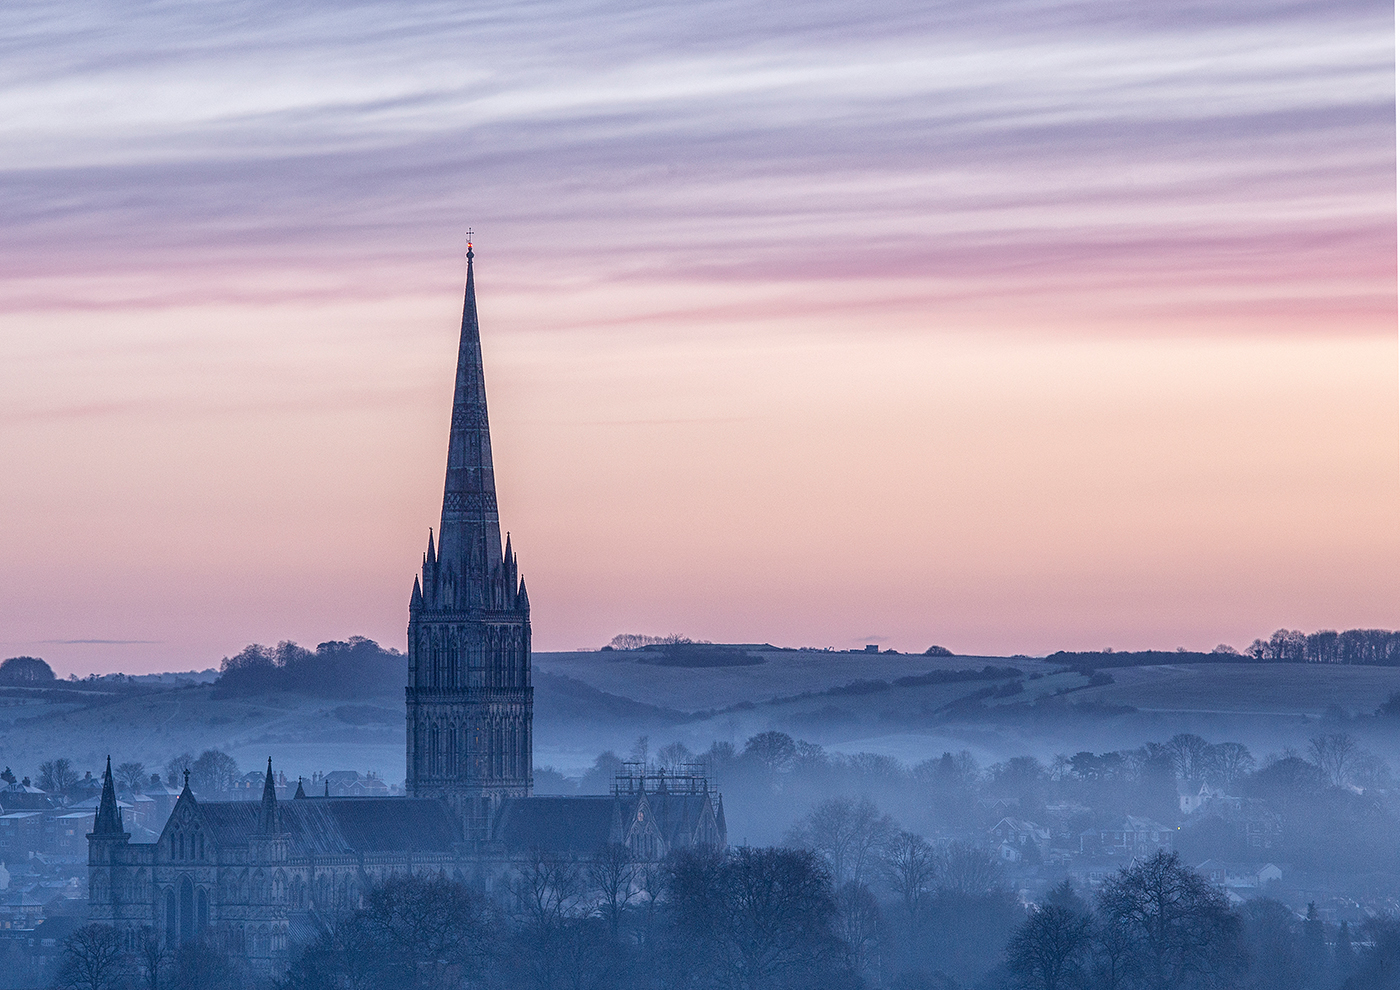 'Cathedral Dawn' by Tony Oliver